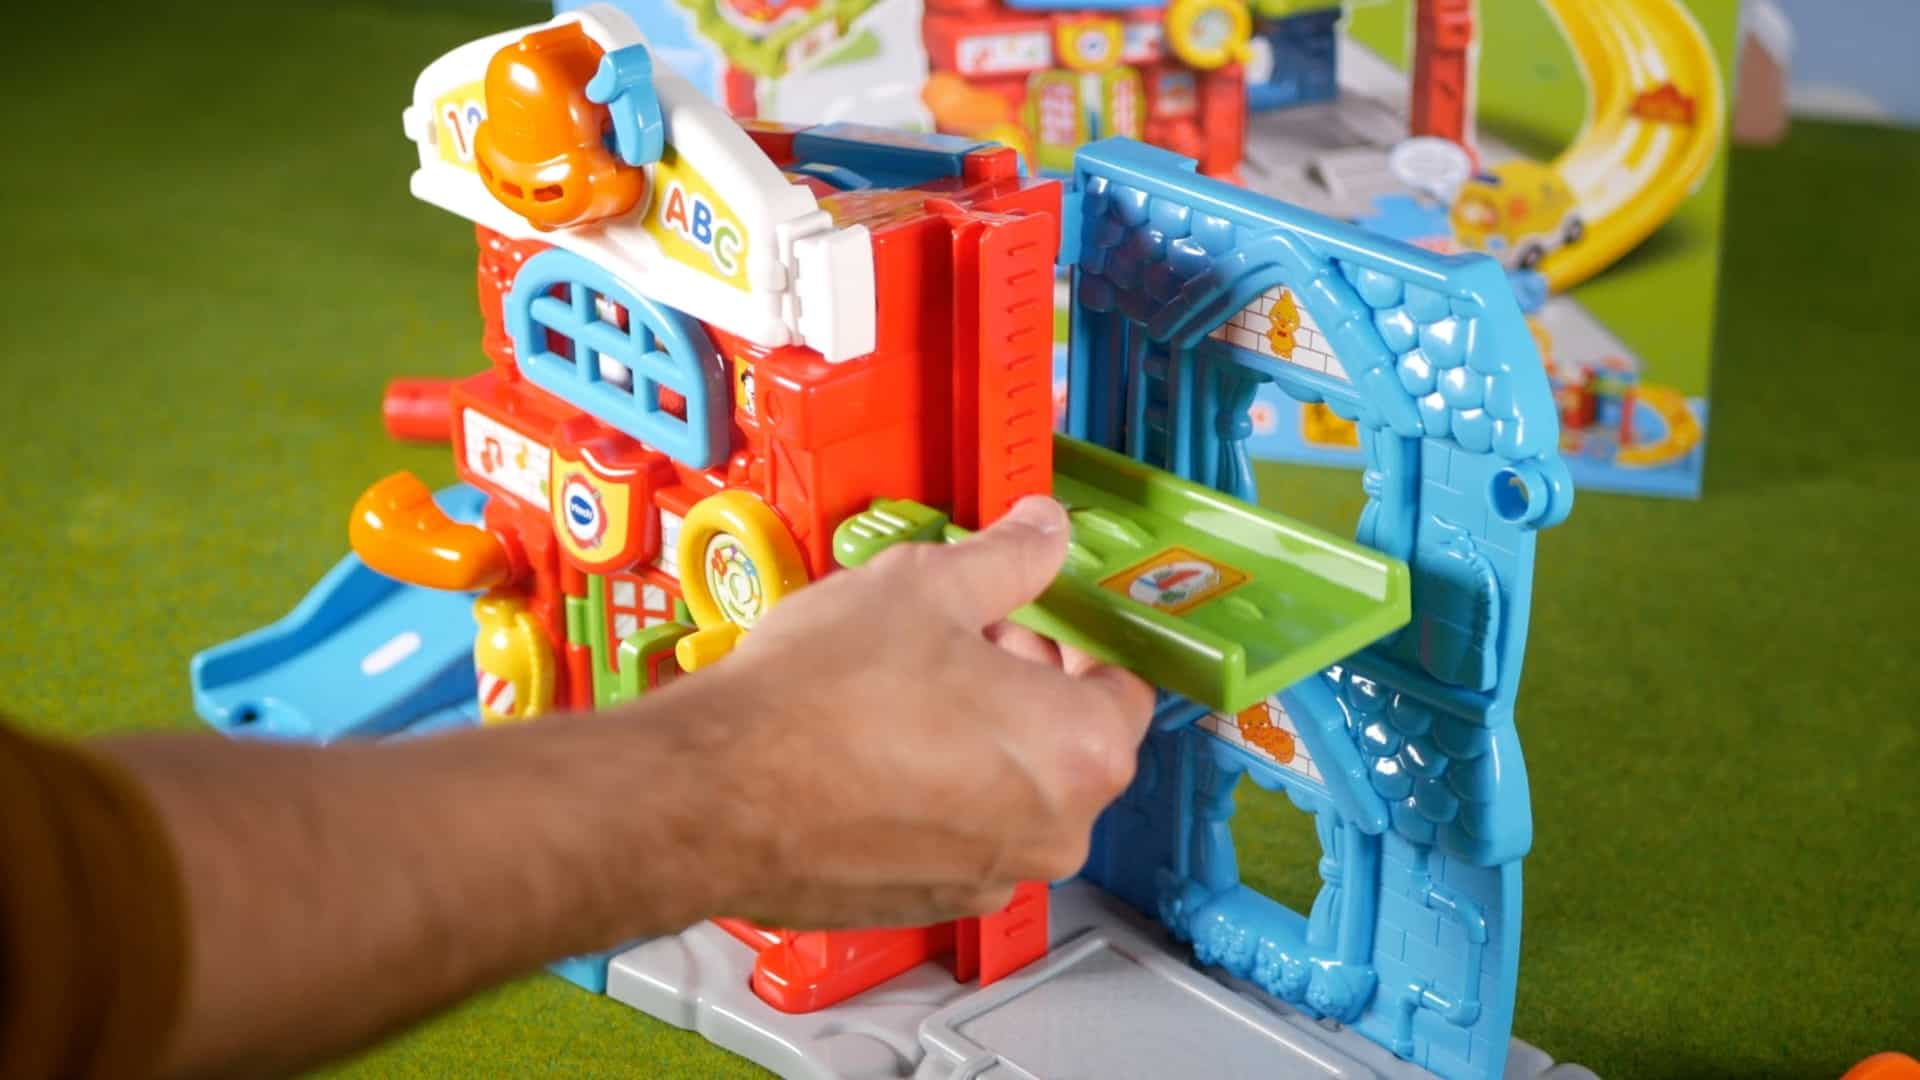 Vtech Toet Toet assemble cars save the day fire station